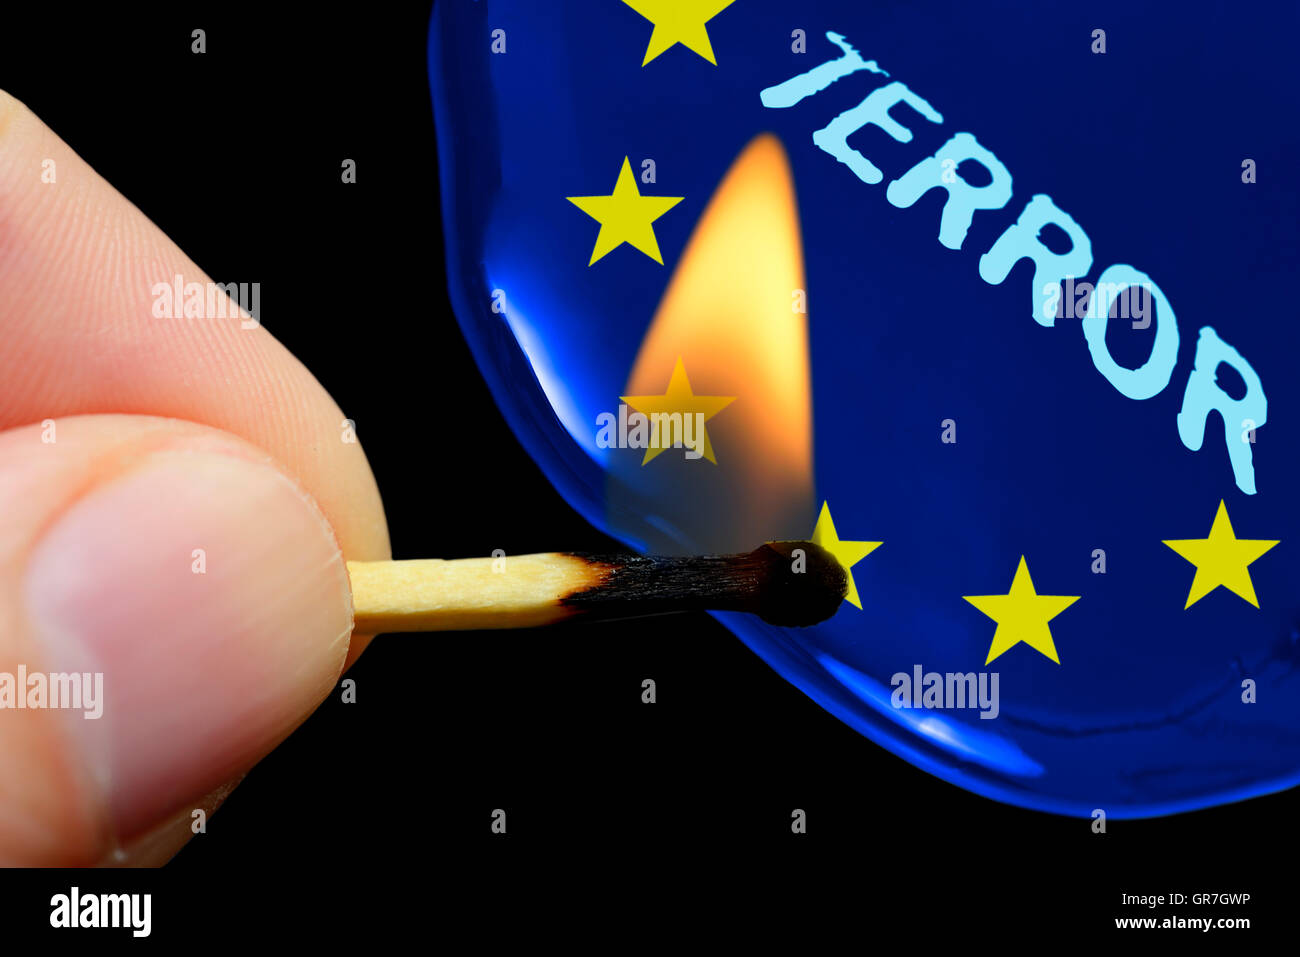 Finger Holding Burning Match In Front Of Flag Of Europe, Terror Threats - Stock Image